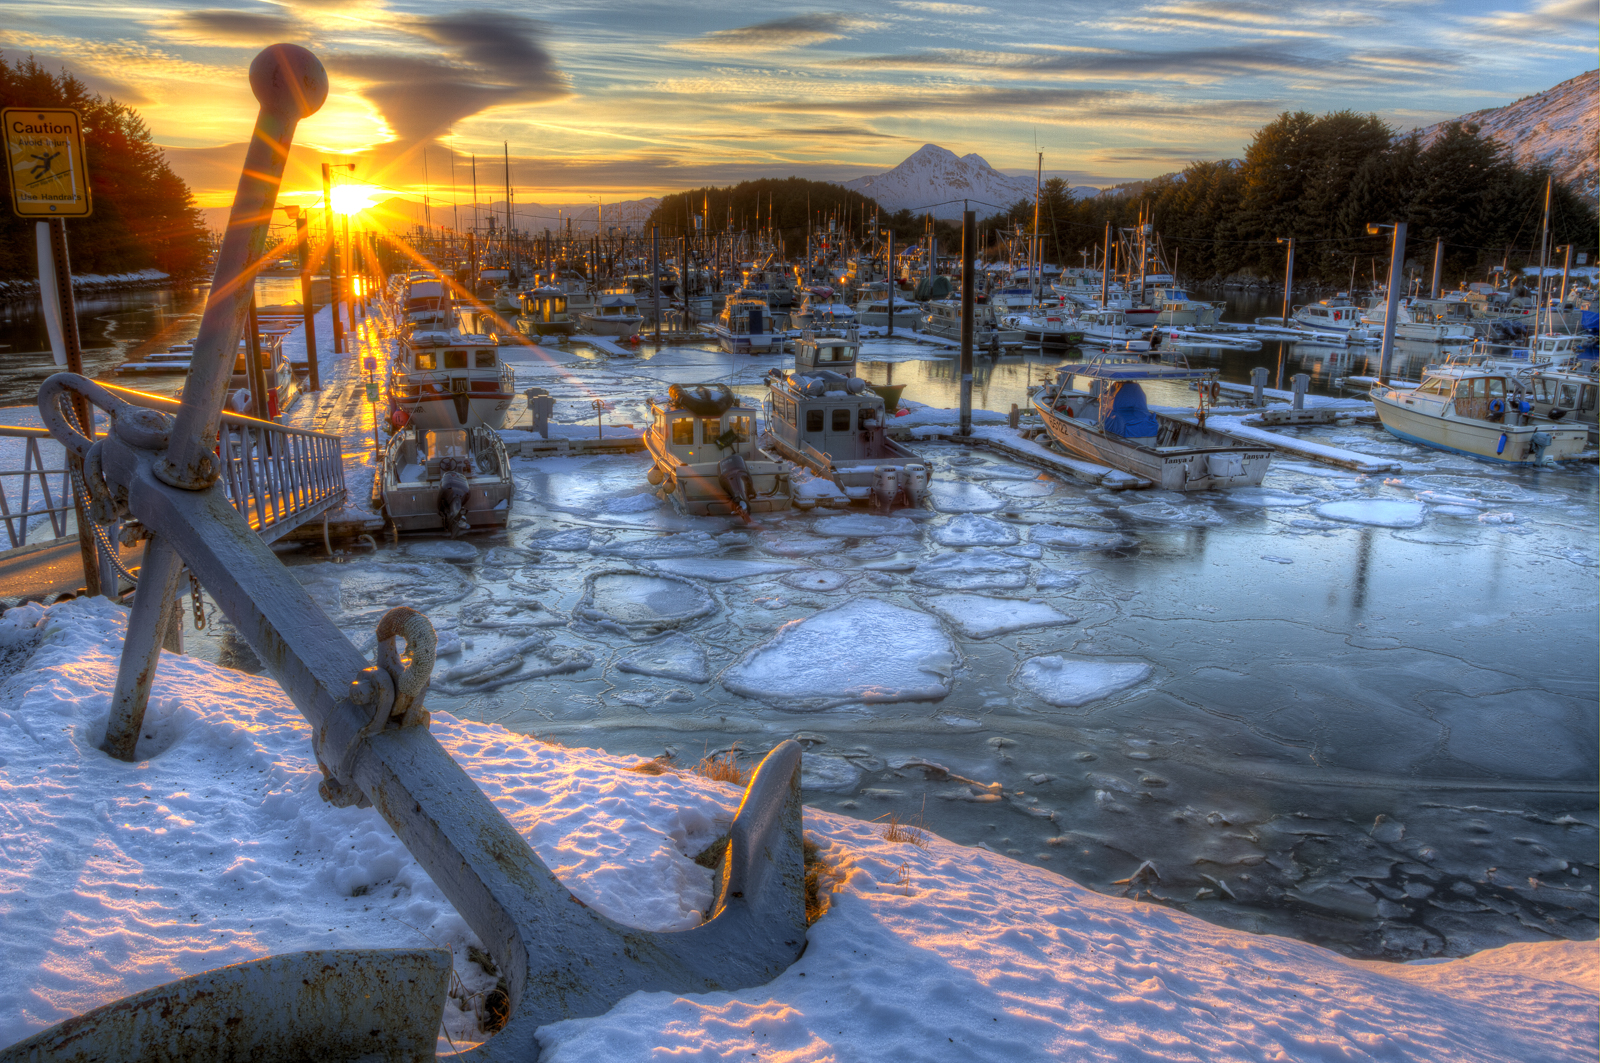 Winter, ice, water, anchor, Kodiak, Alaska